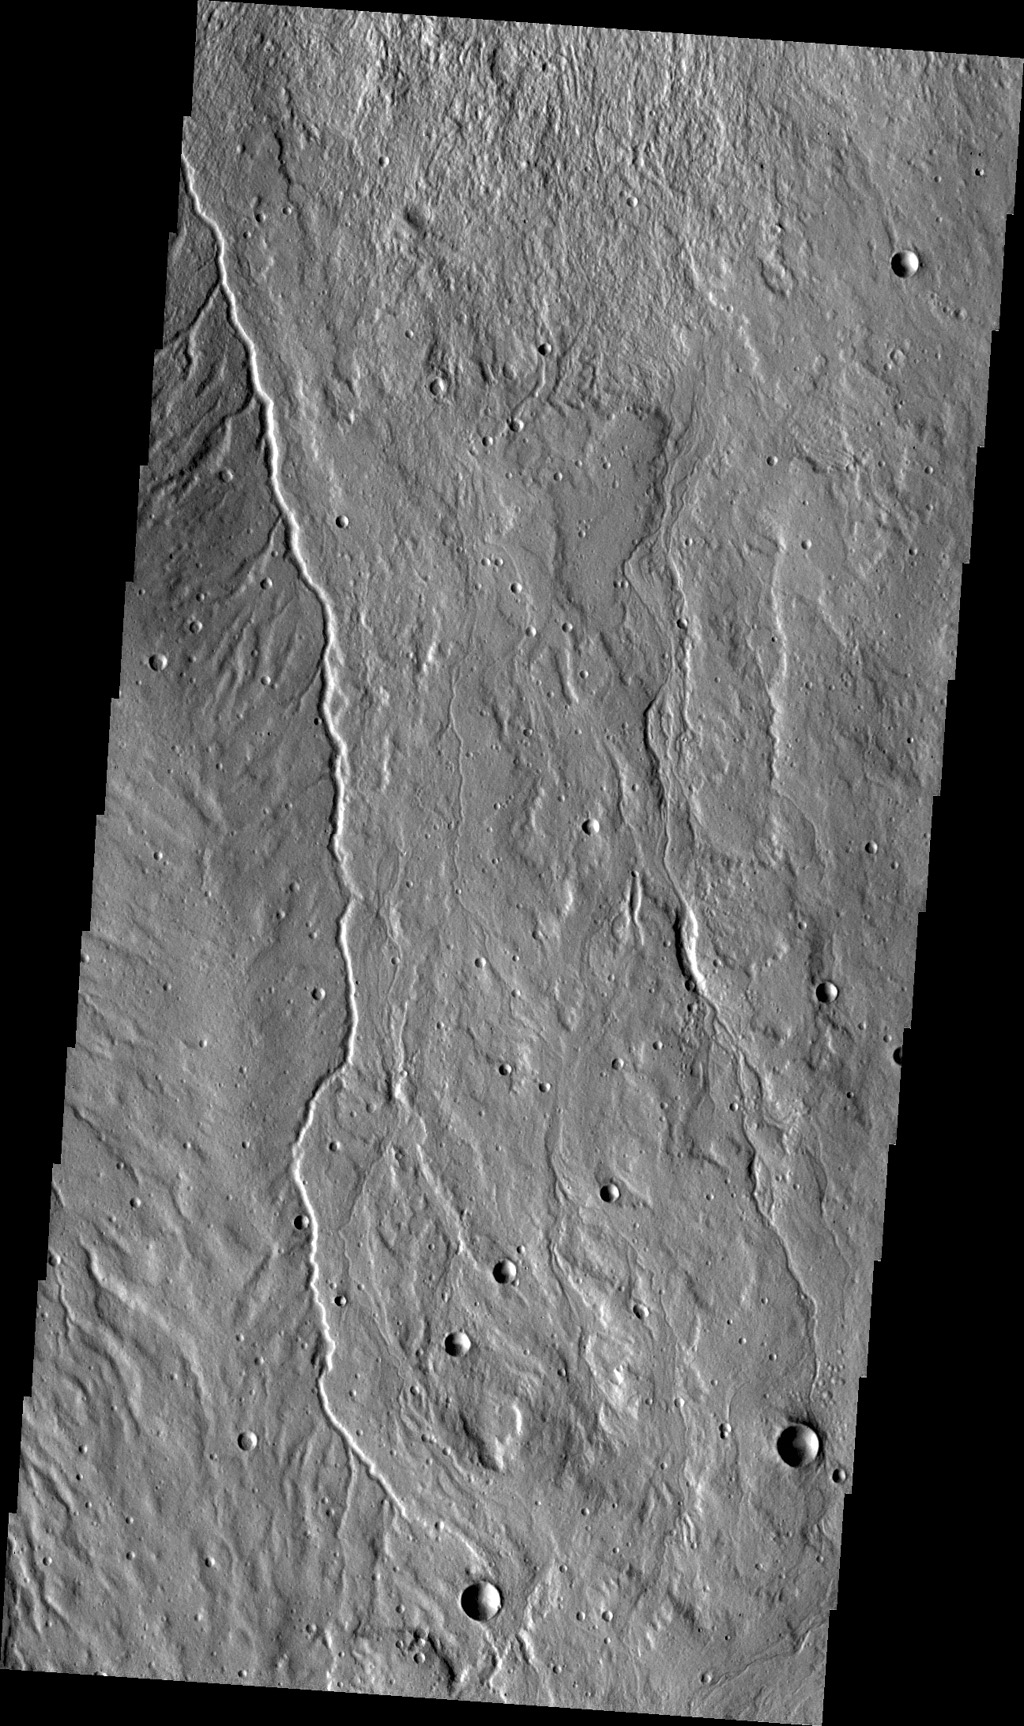 This small channel is located on the western flank of Alba Mons. This image is from NASA's 2001 Mars Odyssey spacecraft.